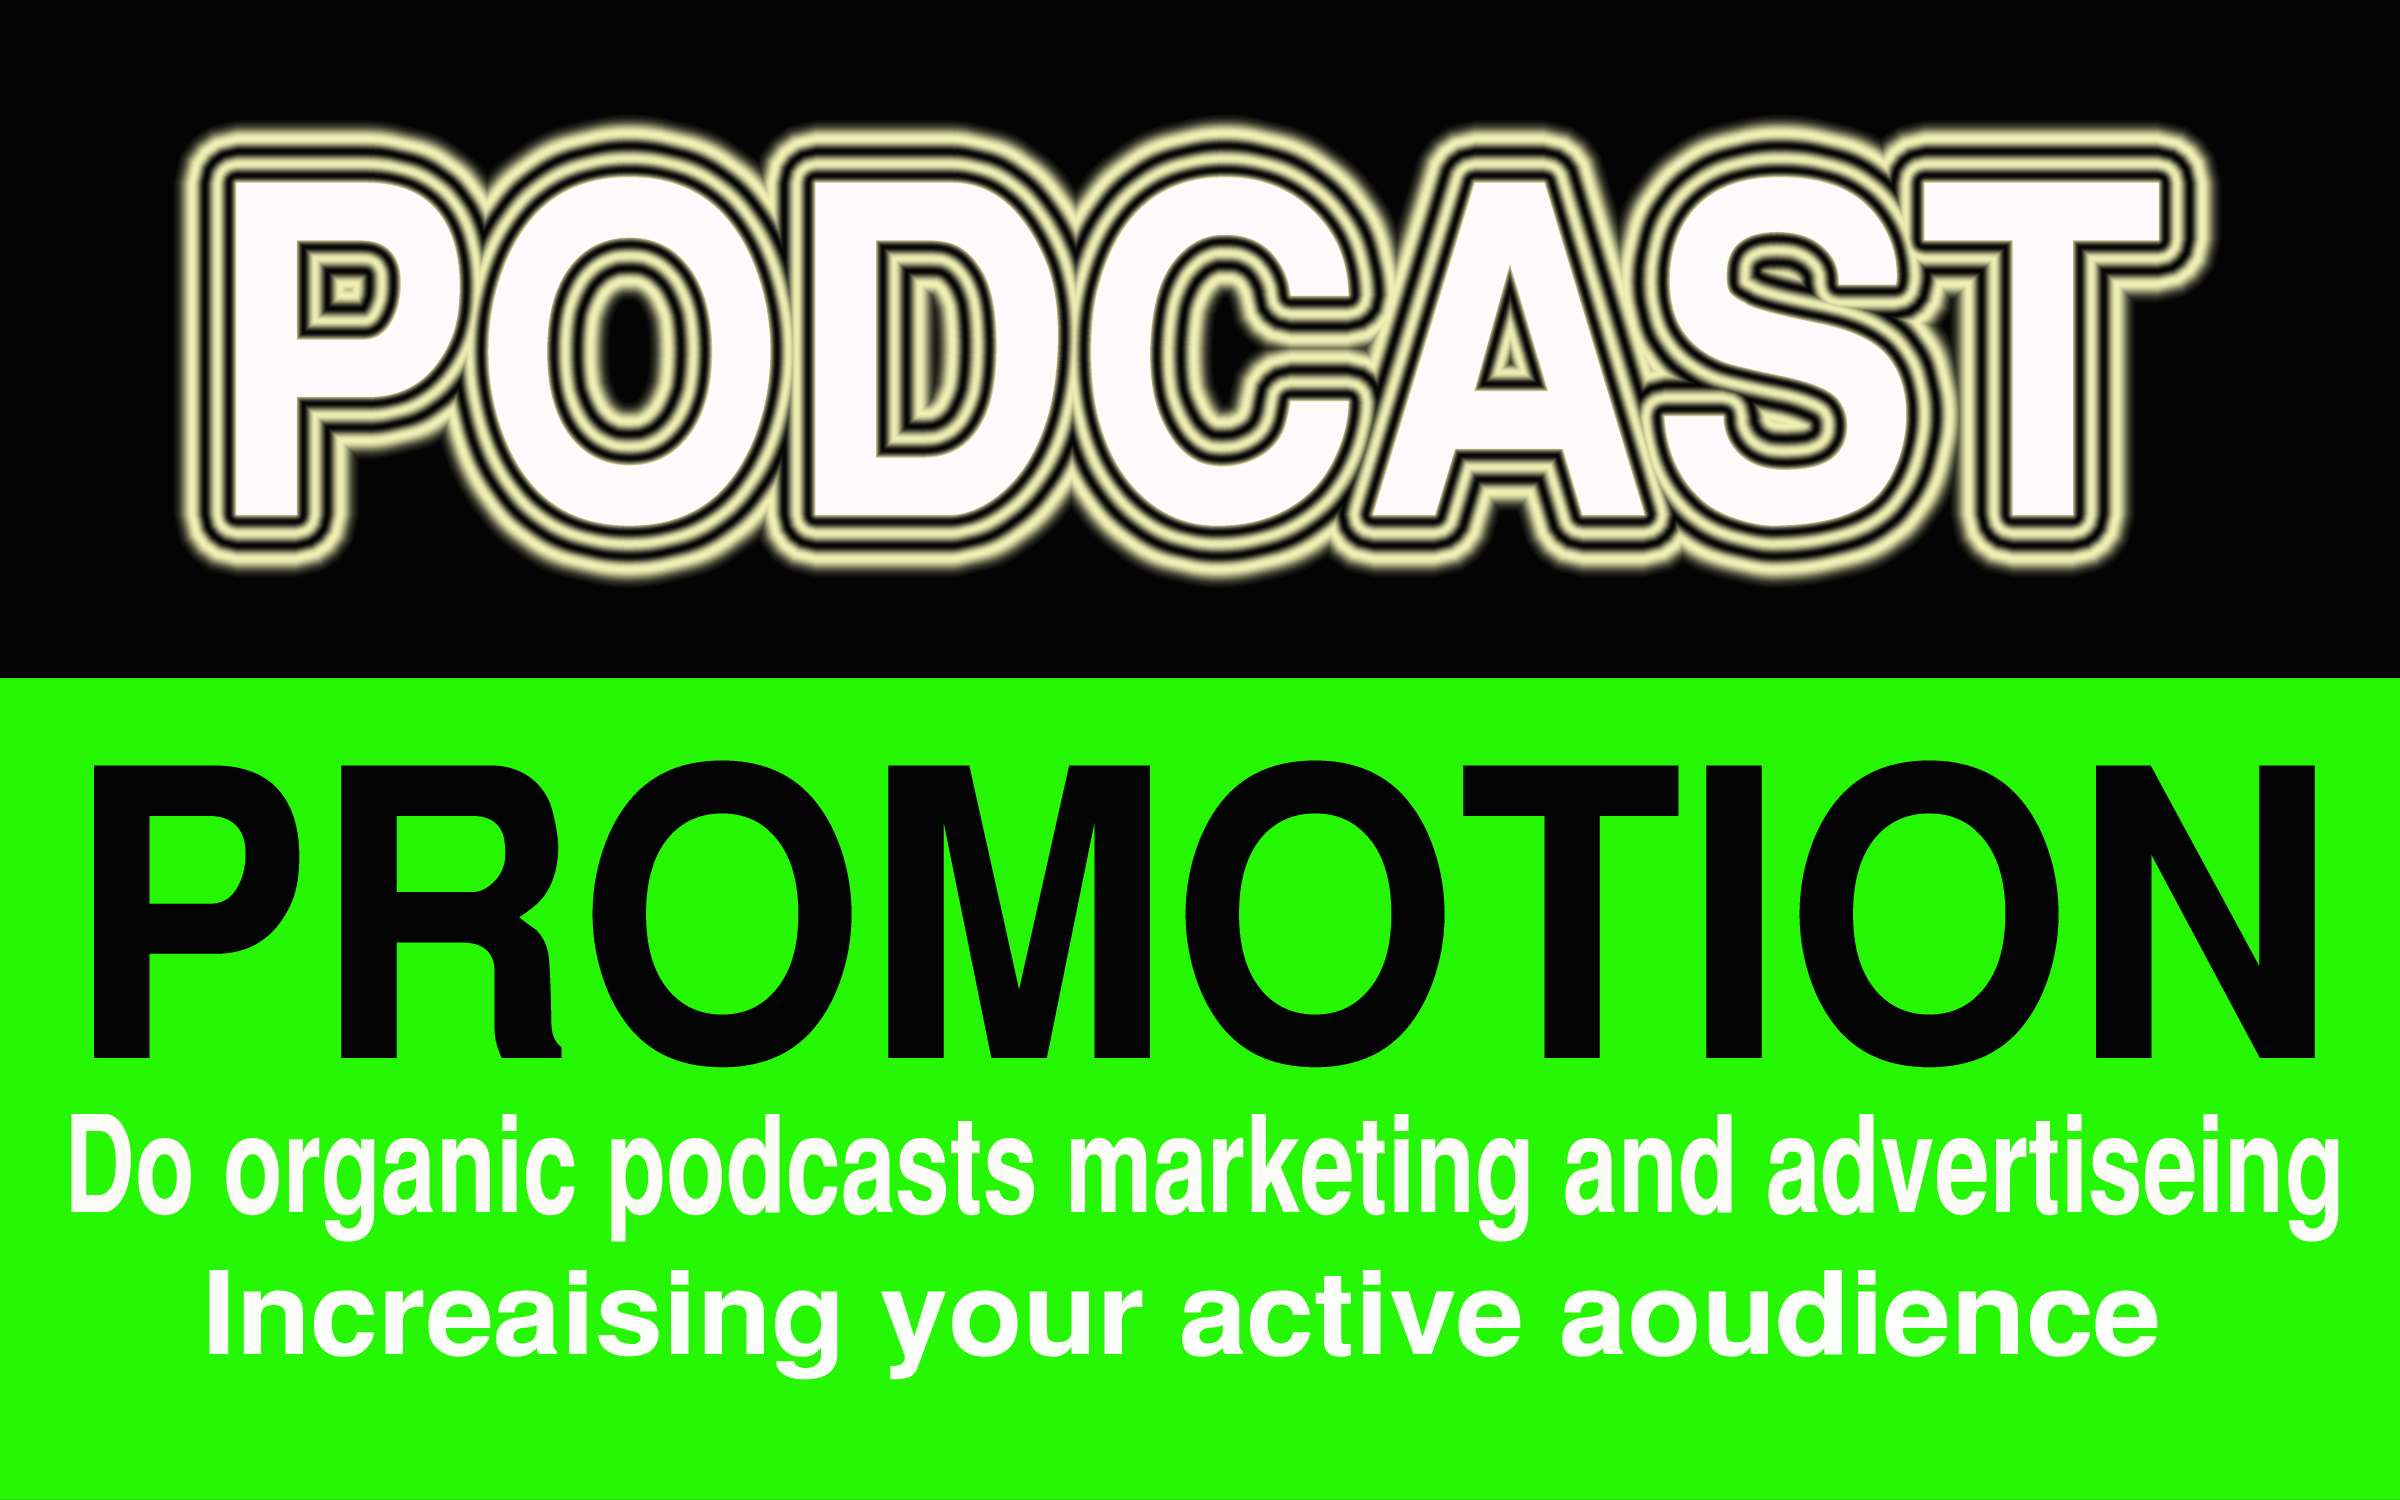 Do organic podcasts marketing and advertising increasing your active audience